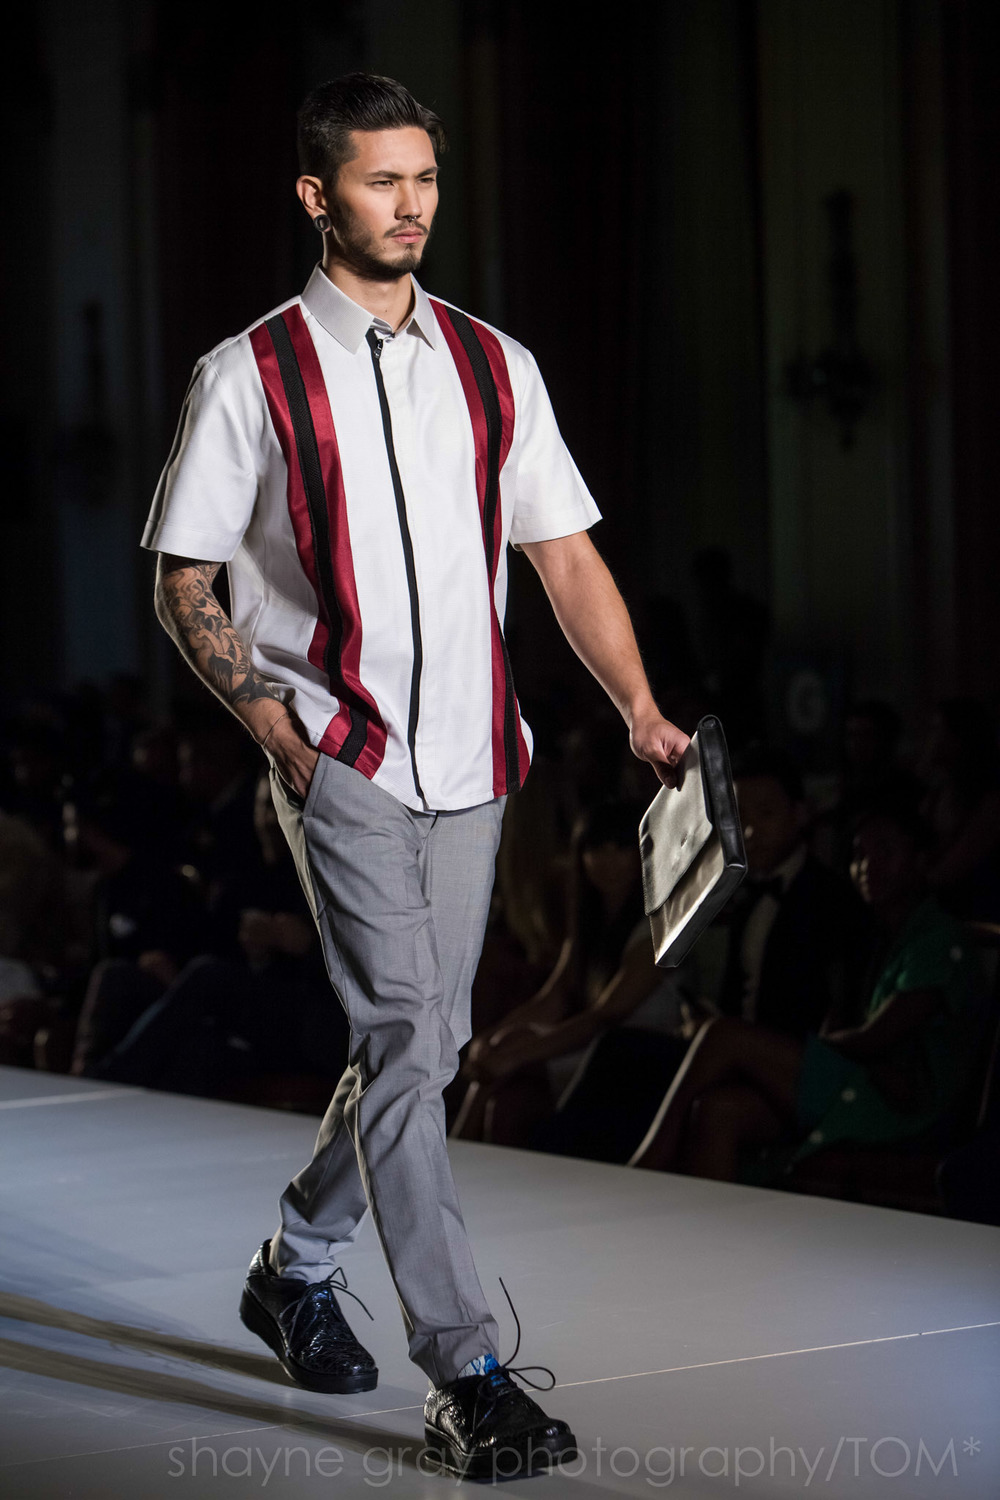 Shayne-Gray-Toronto-men's-fashion_week-TOM-noel-crisostomo-8479.jpg